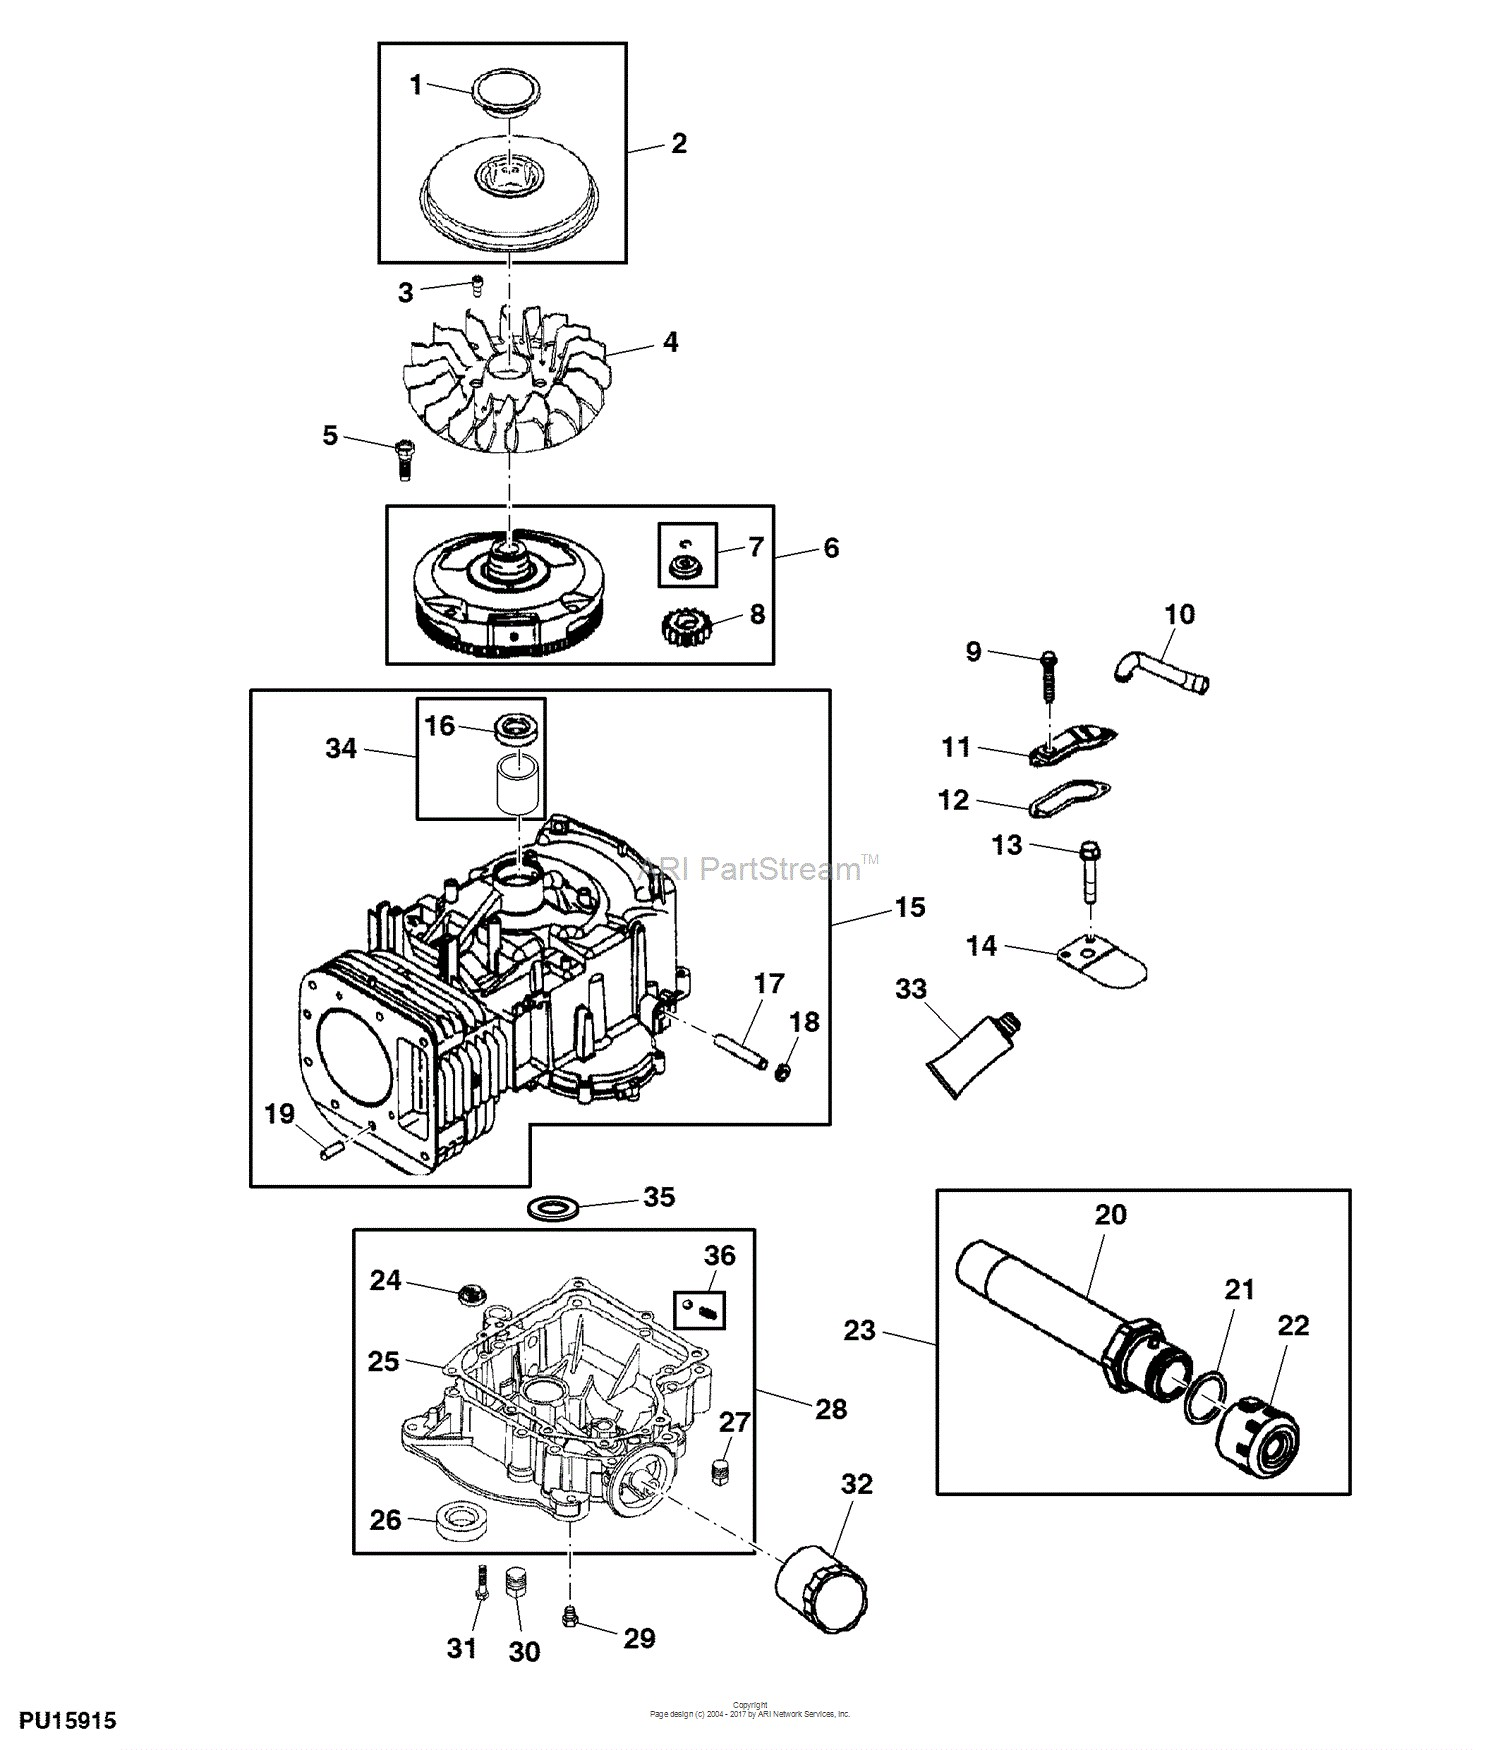 John deere la105 engine diagram john deere parts diagrams john deere la105 tractor pc9740 of john